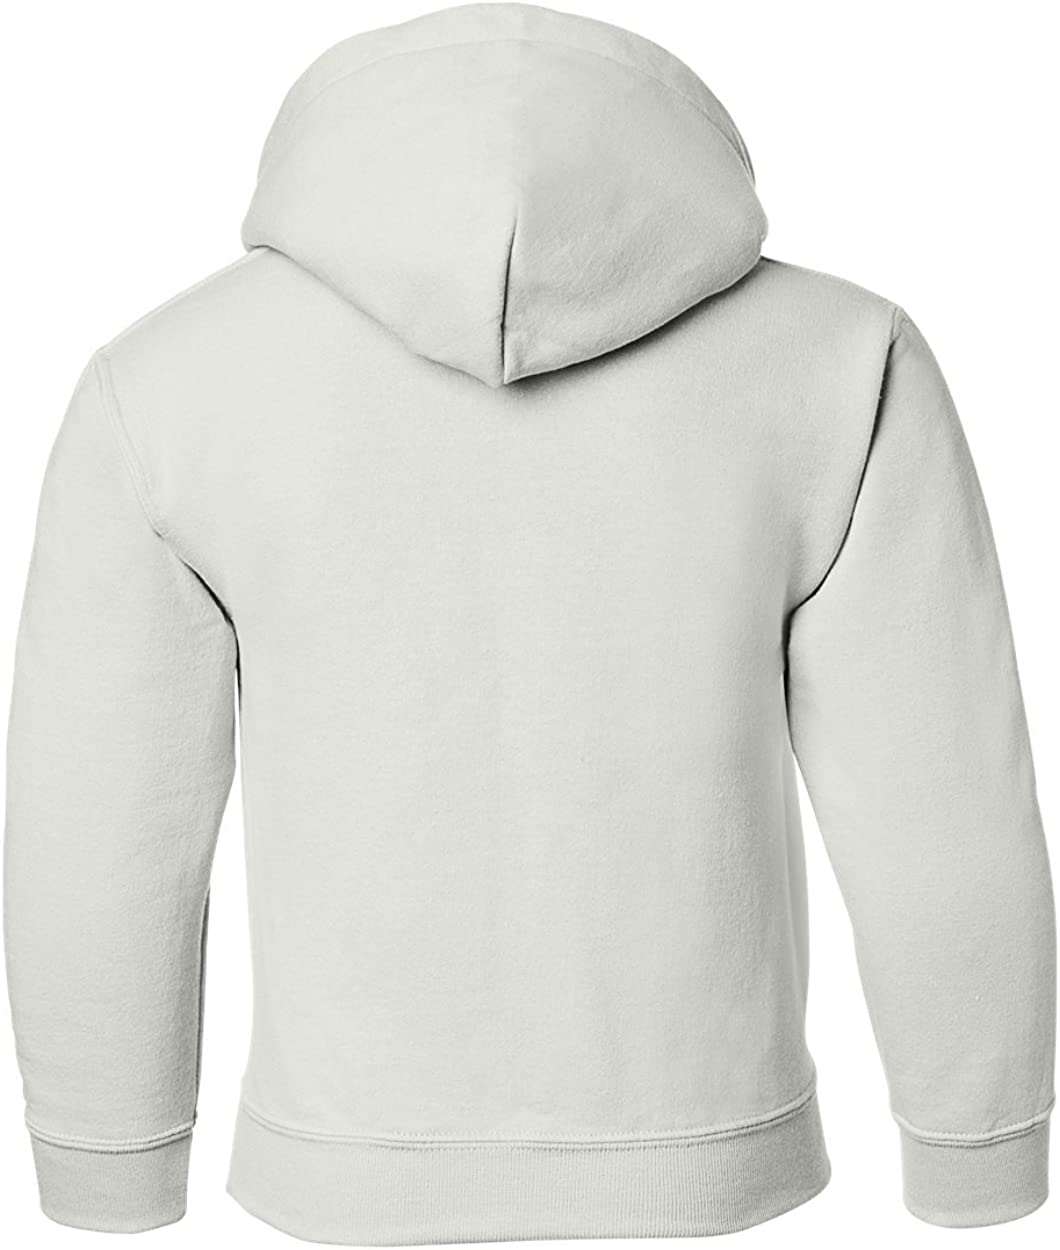 Heavy Blend Youth Hooded Sweatshirt, Color: Royal, Size: Large